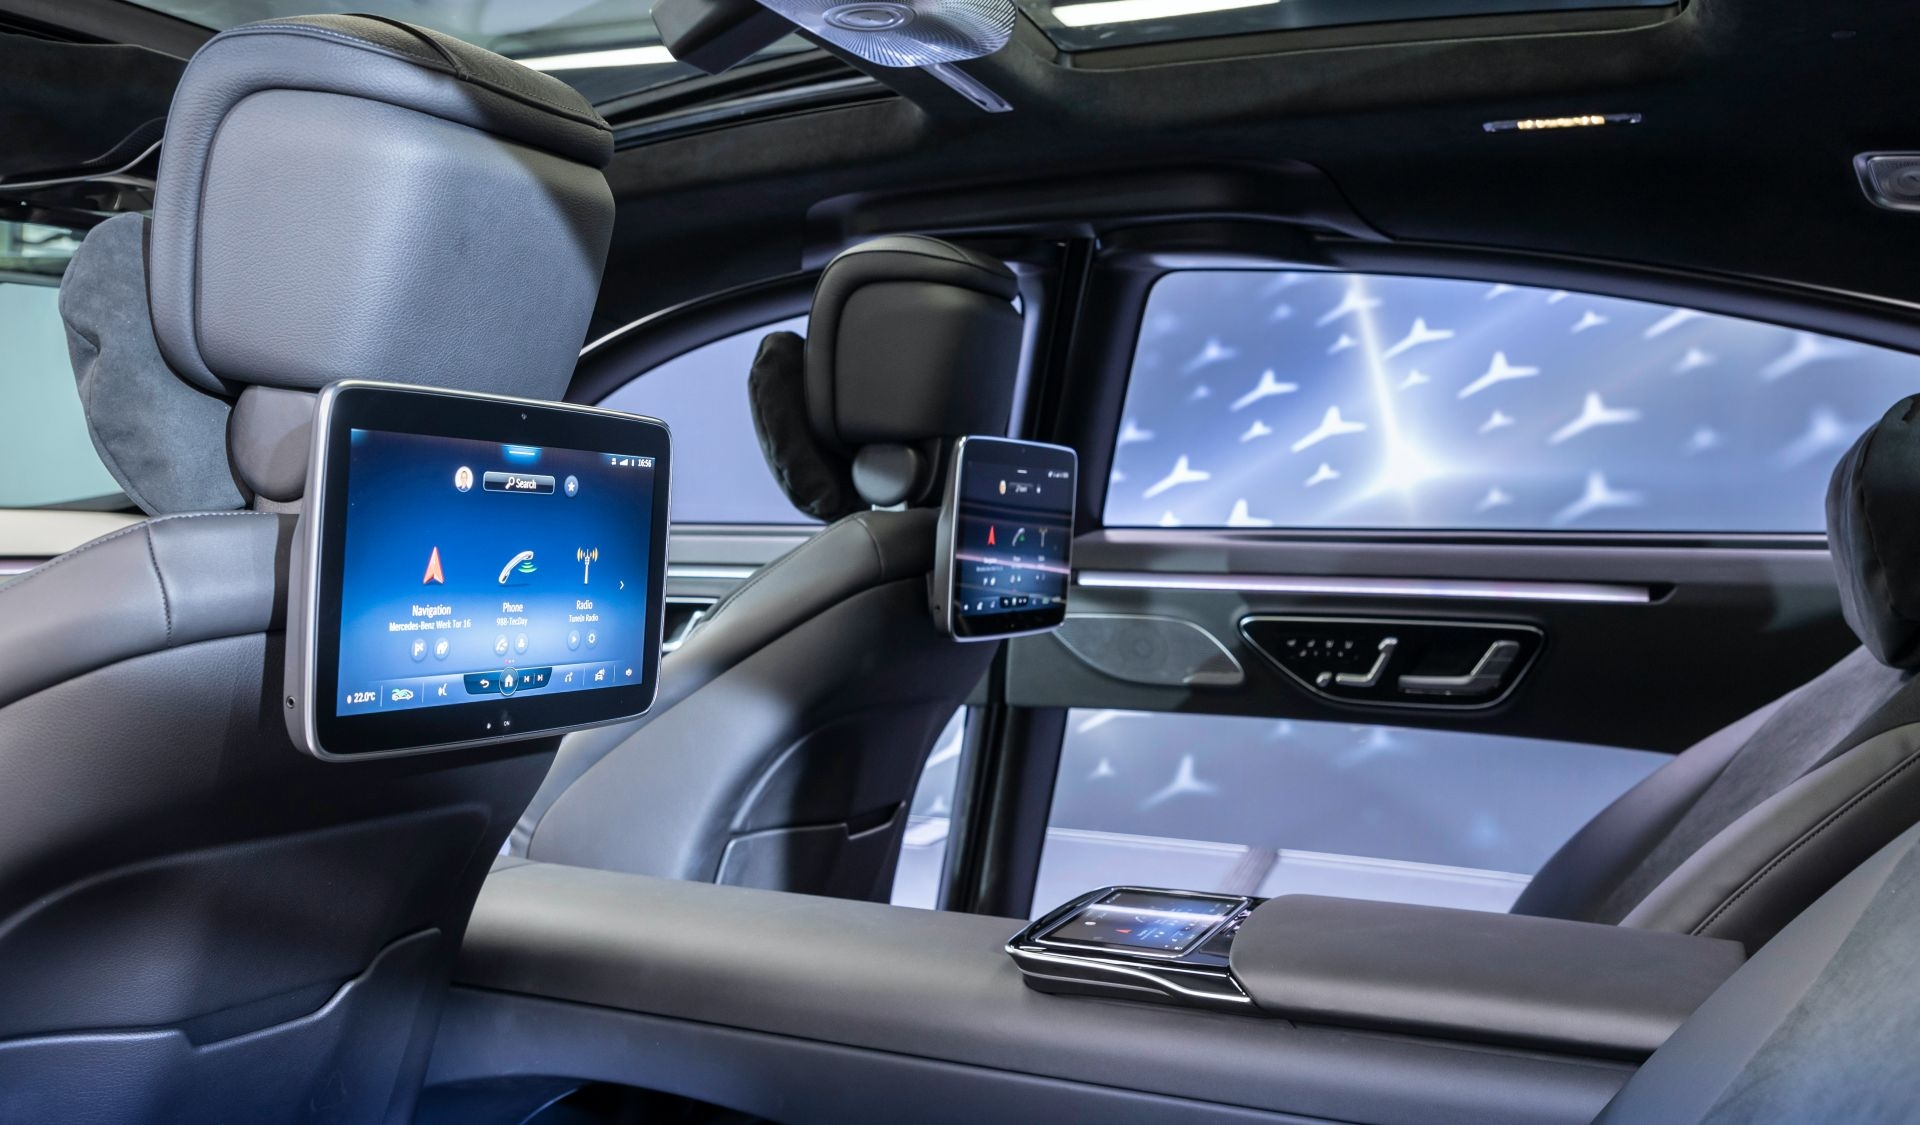 Mercedes Classe S 2021 nuovo MBUX